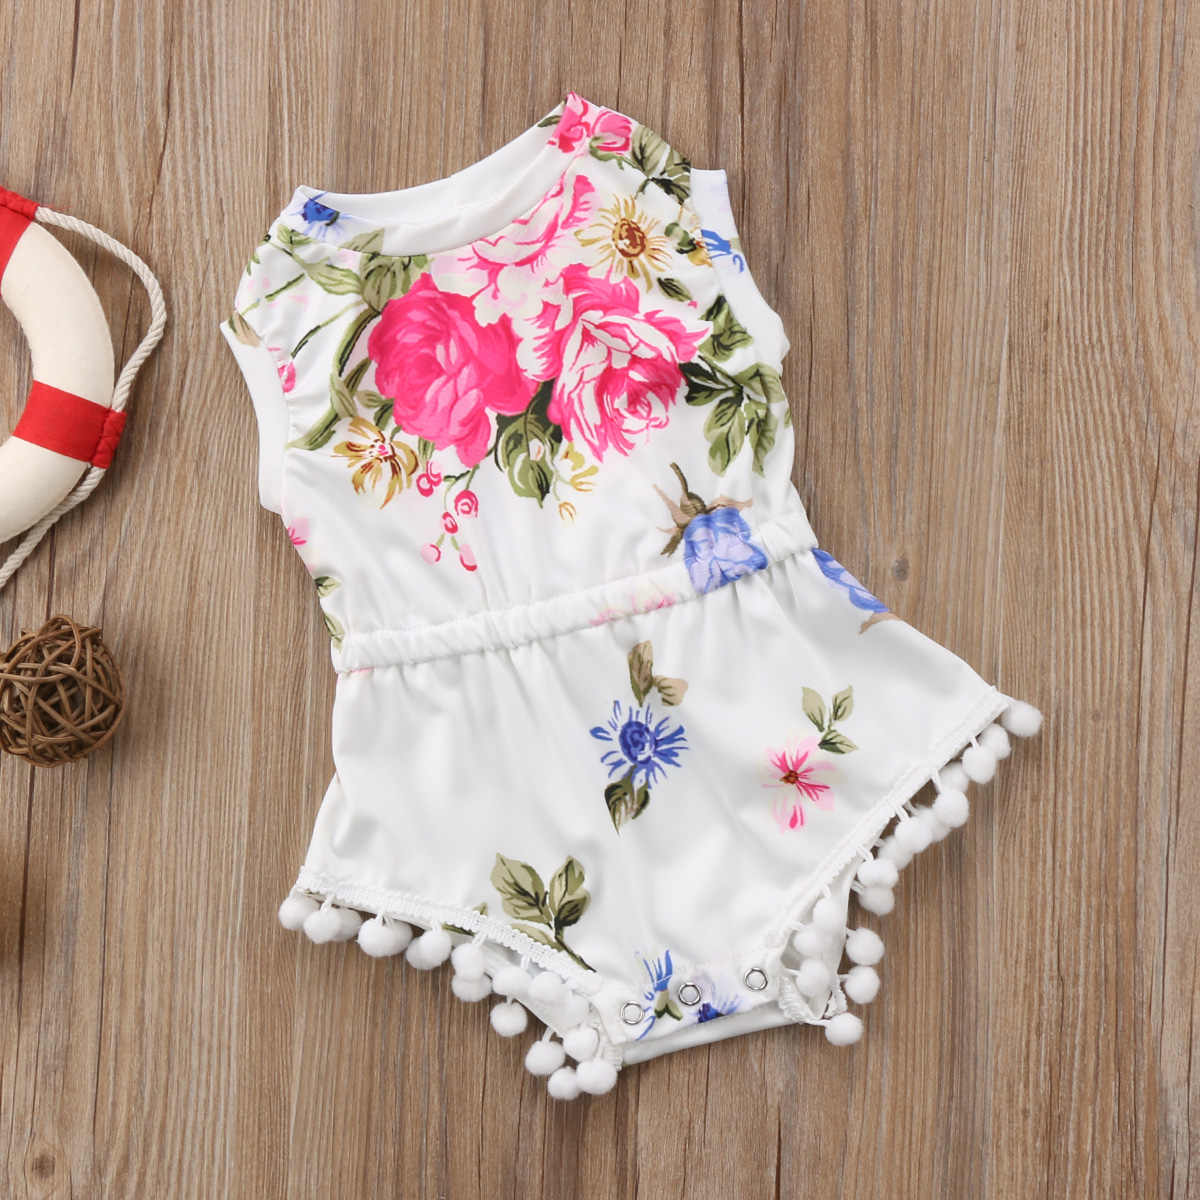 e619e2ae33a3 ... Fashion Summer Floral Newborn Kids Baby Girls Sleeveless O-neck Romper  Babygrow Sunsuit Cotton Tassel ...